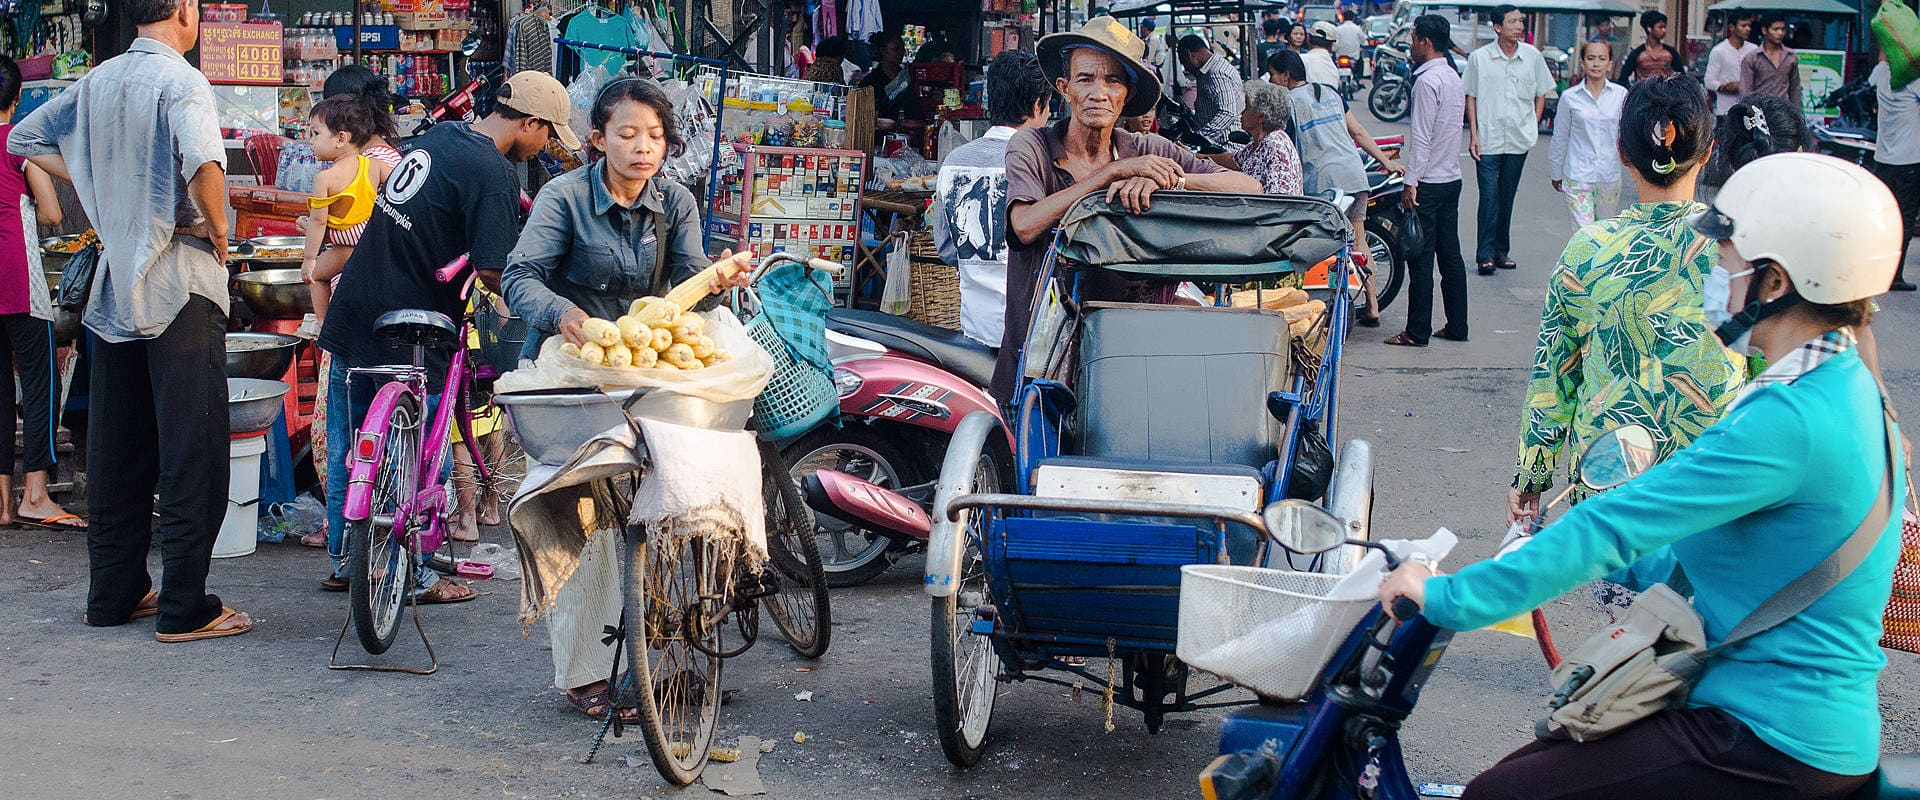 The Grantourismo Travel Guide to Phnom Penh, Cambodia. Copyright © 2017 Terence Carter / Grantourismo. All Rights Reserved.